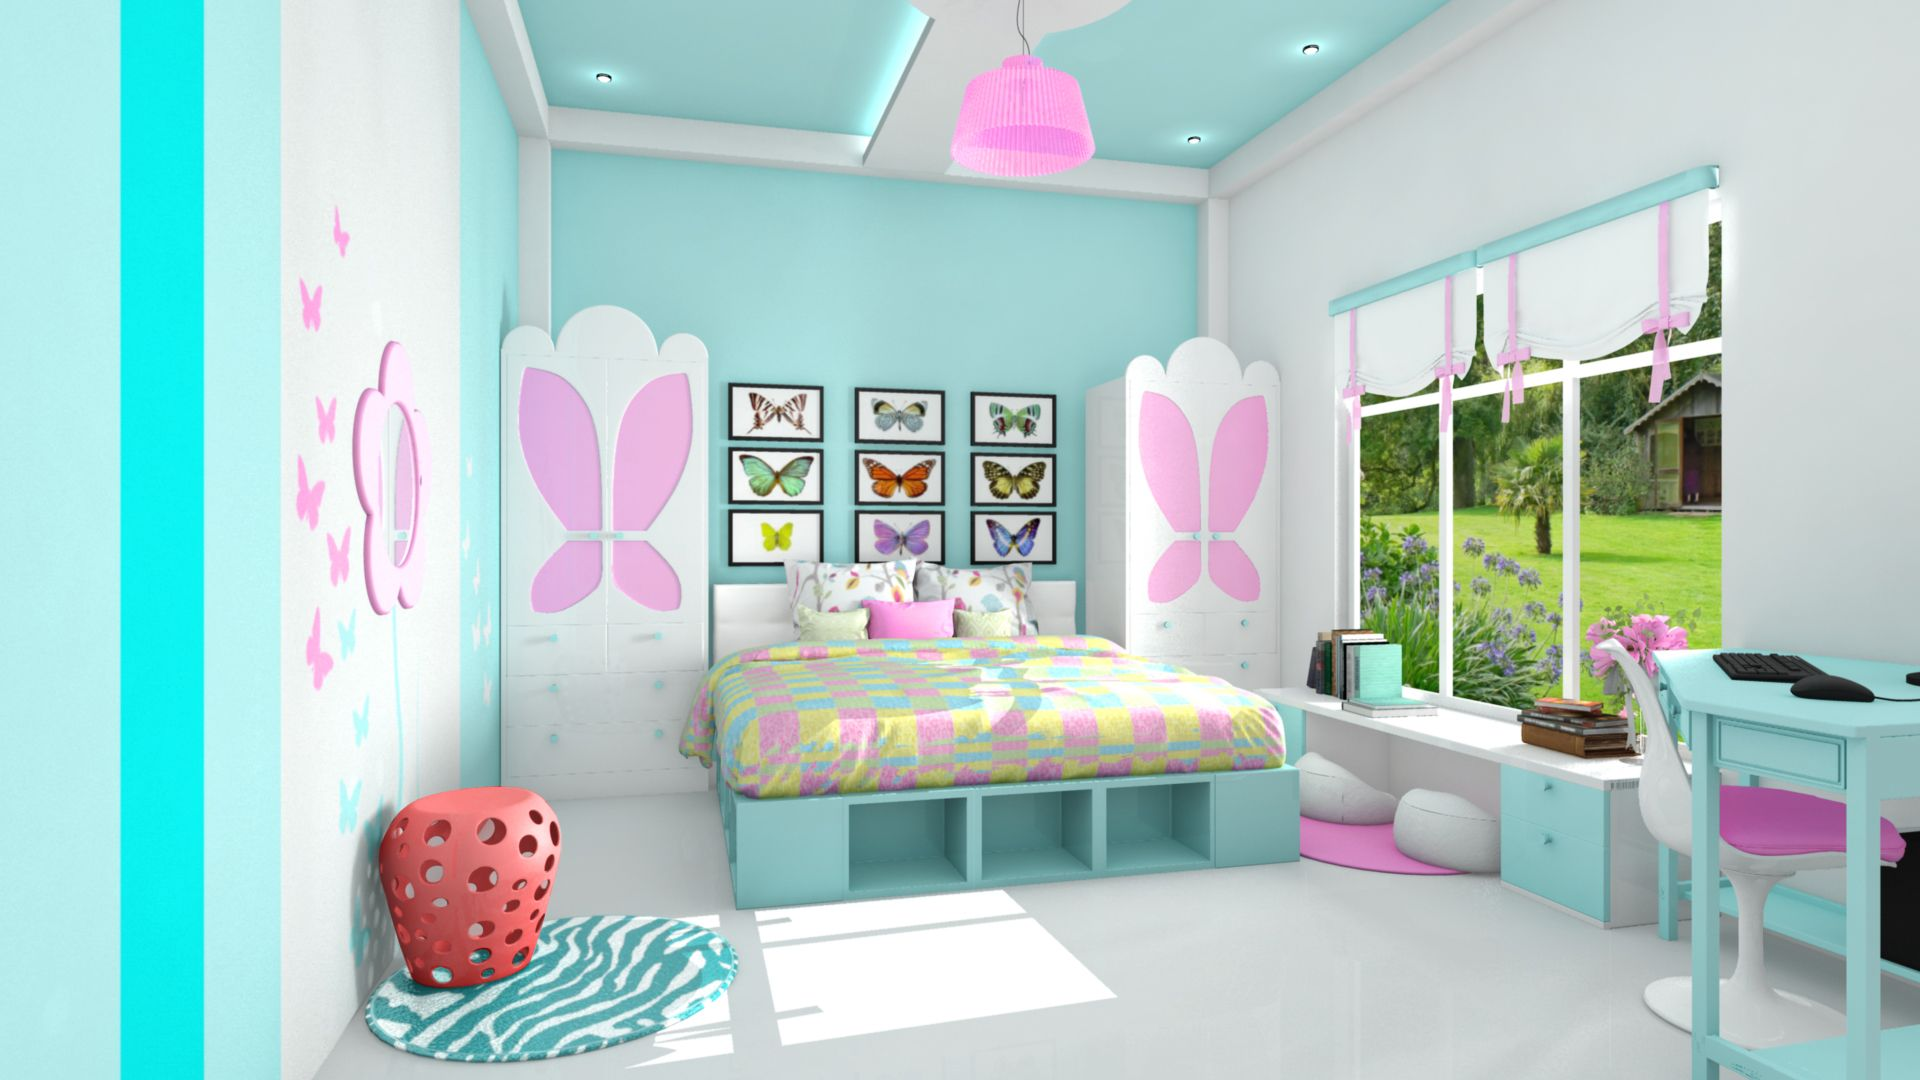 Ten yirs olde bed rooms design young girl bedroom for Older girls bedroom designs